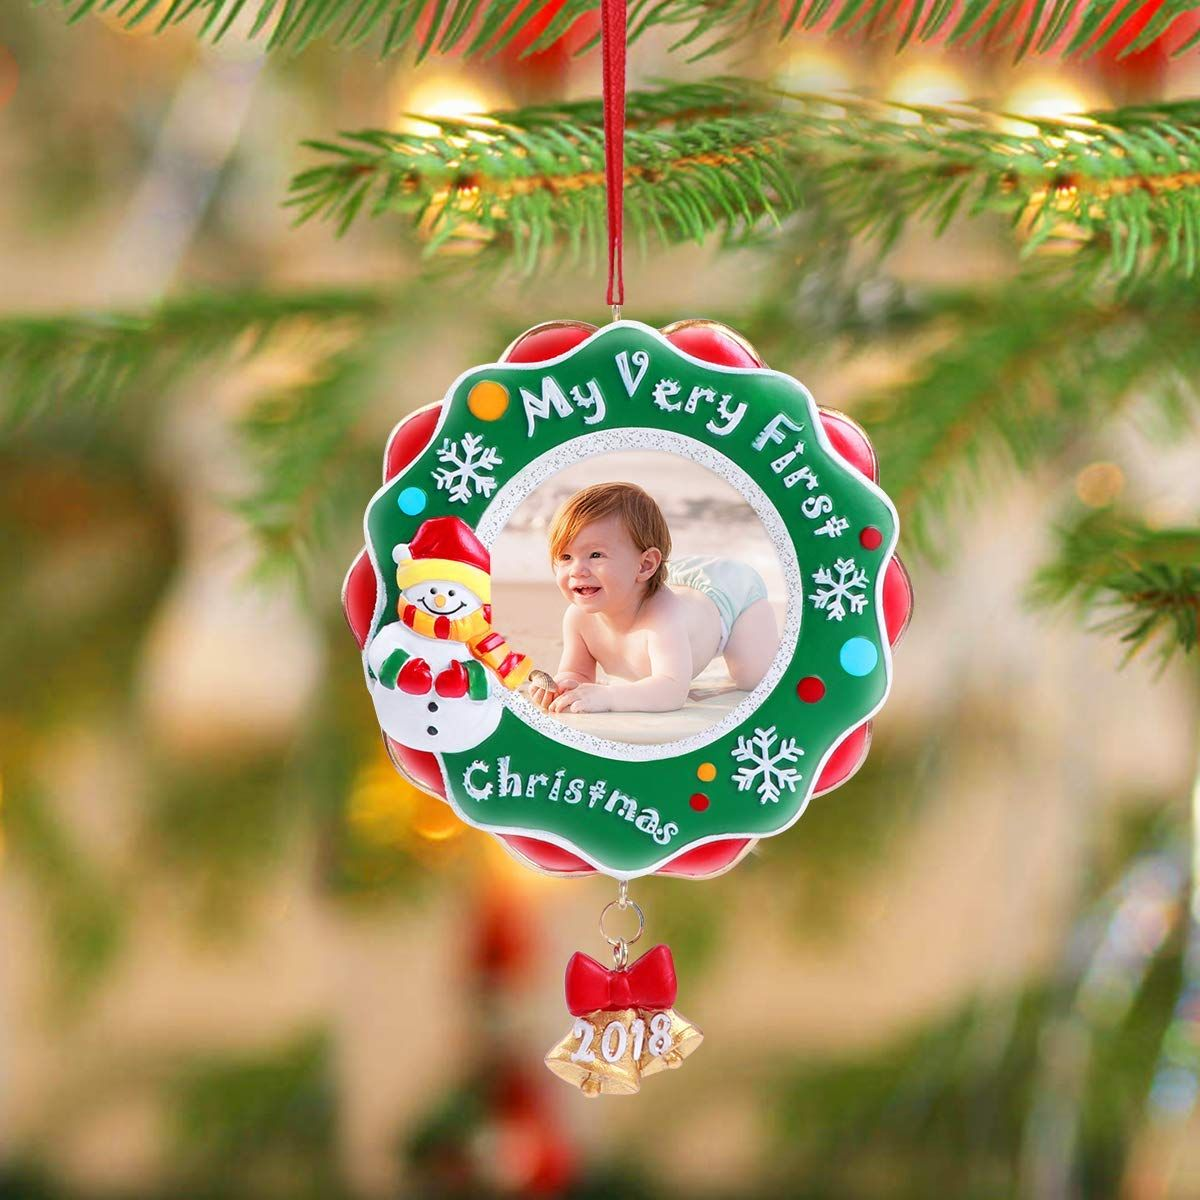 Amazon Com Unomor 2018 My Very First Christmas Ornament Baby S First Picture Christmas Ornaments Gifts Baby First Christmas Ornament First Christmas Ornament